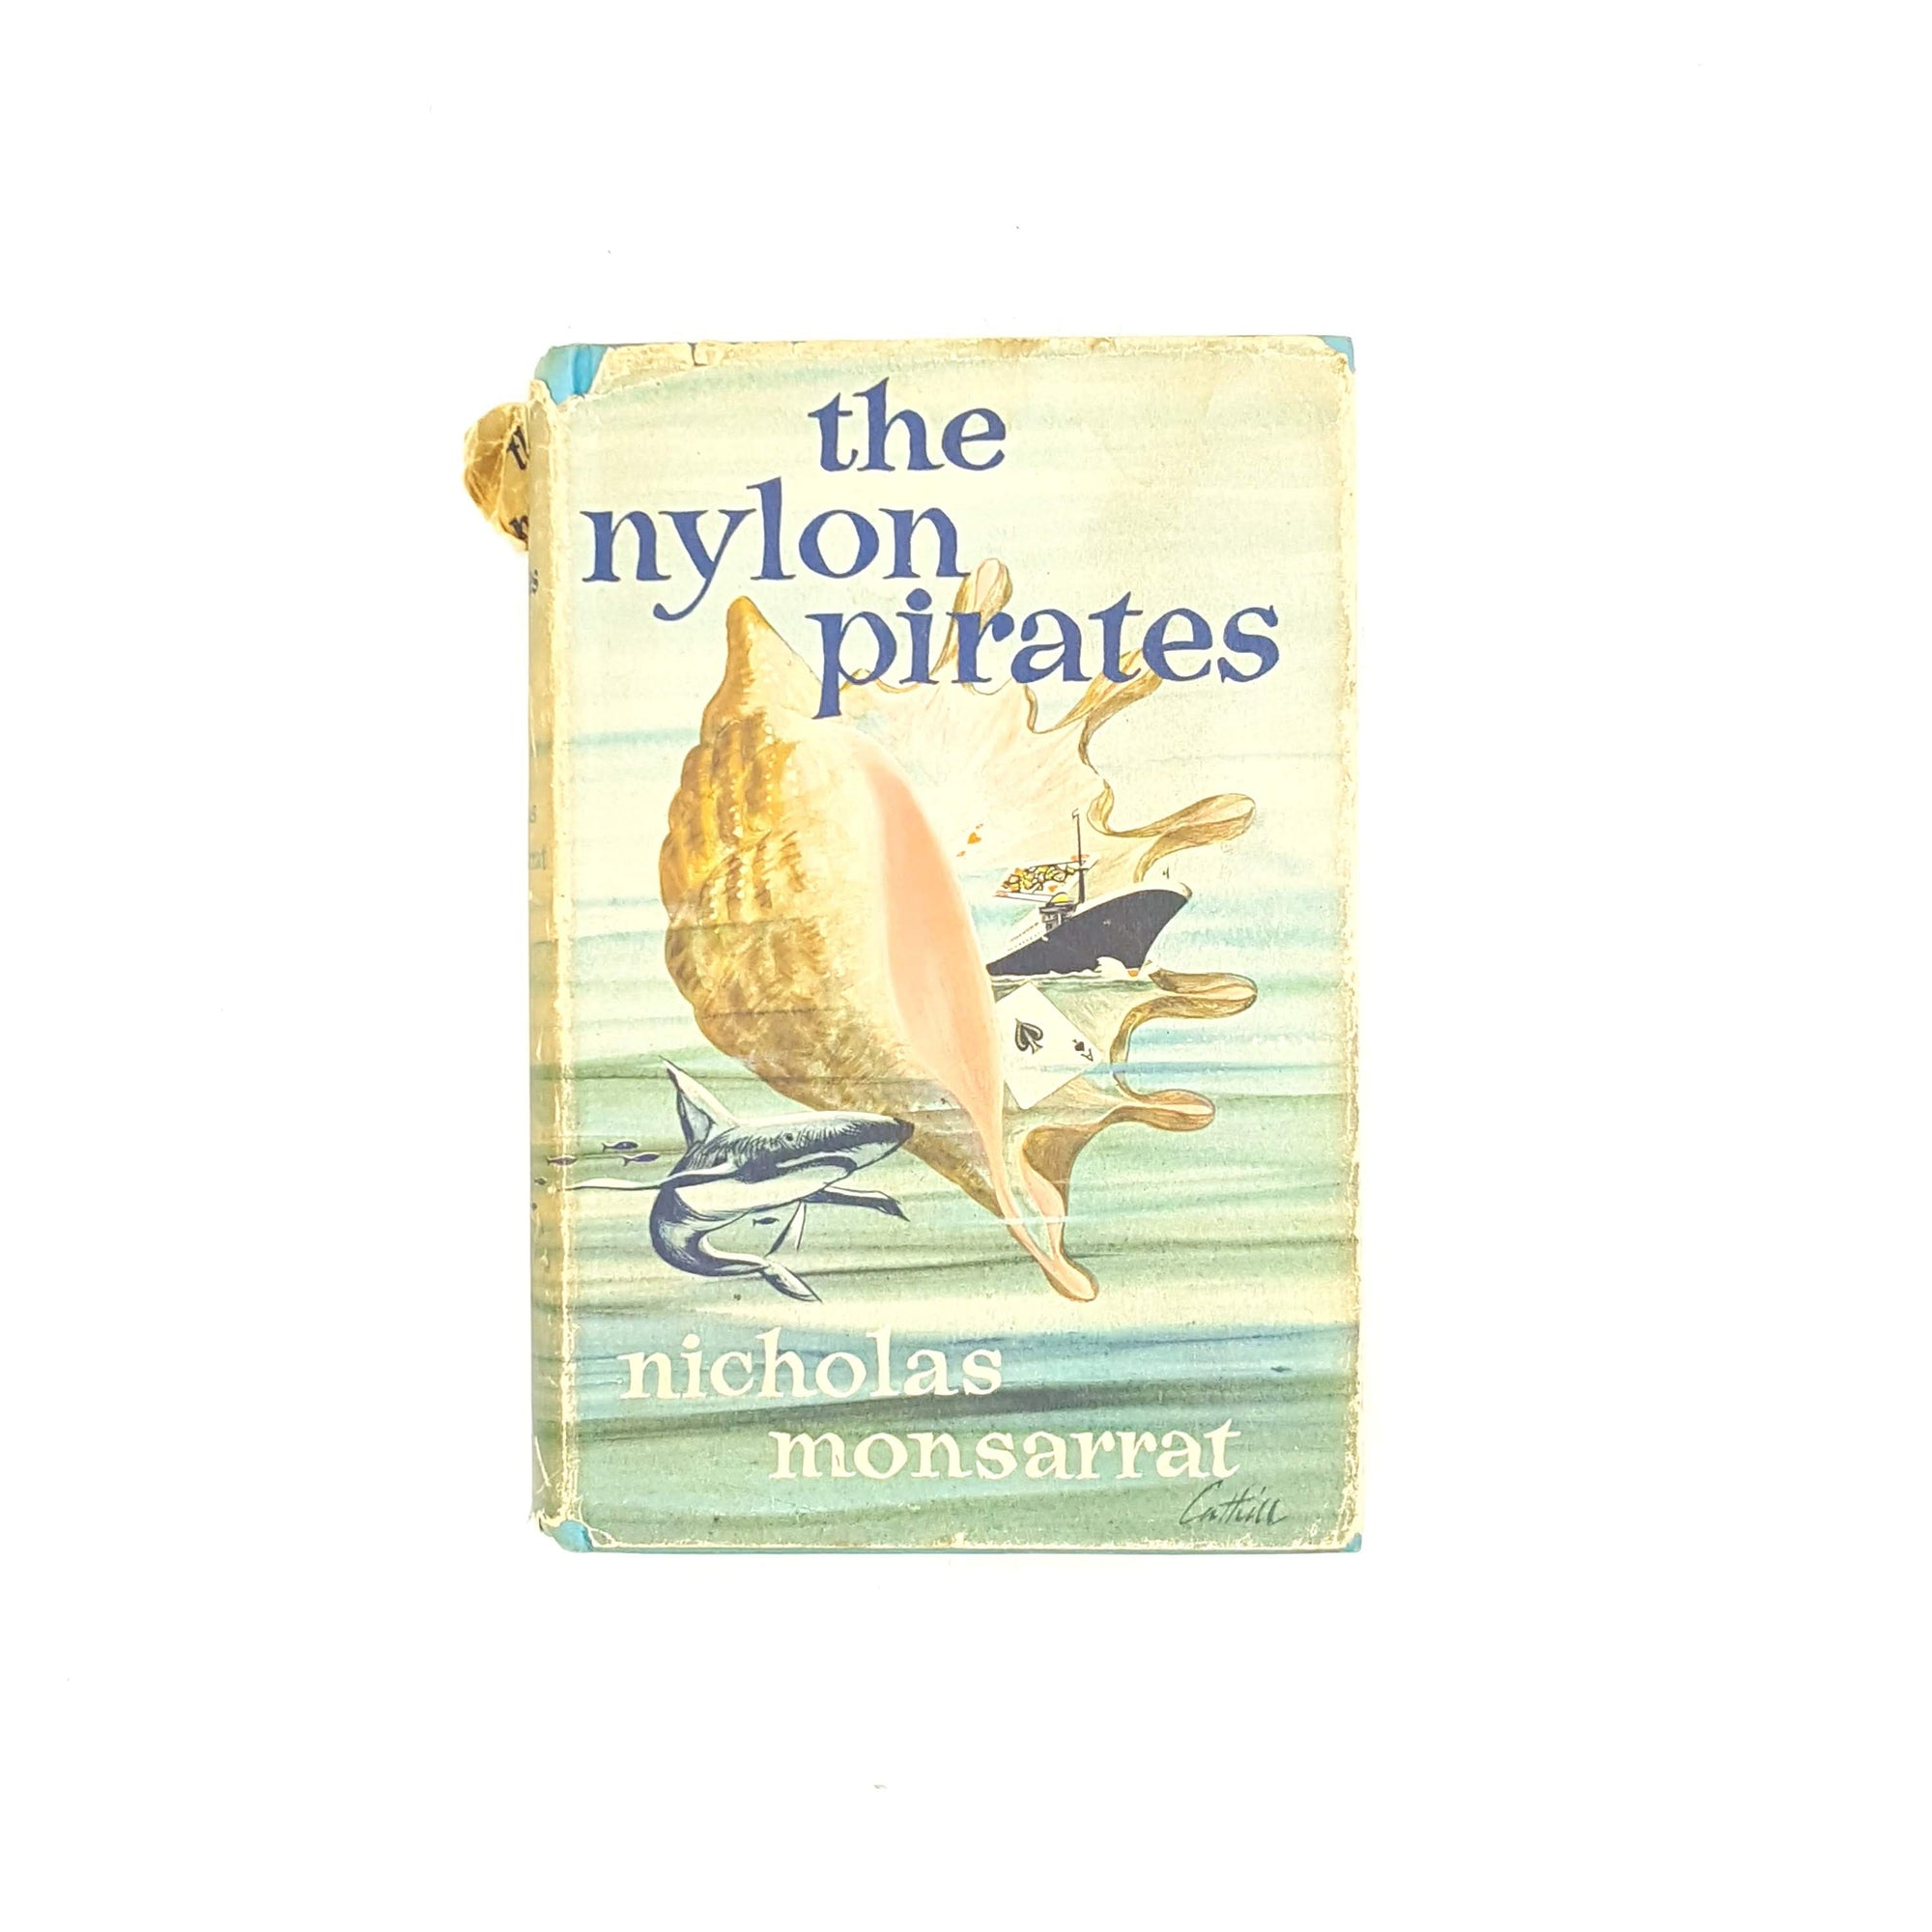 The Nylon Pirates by Nicholas Monsarrat 1960